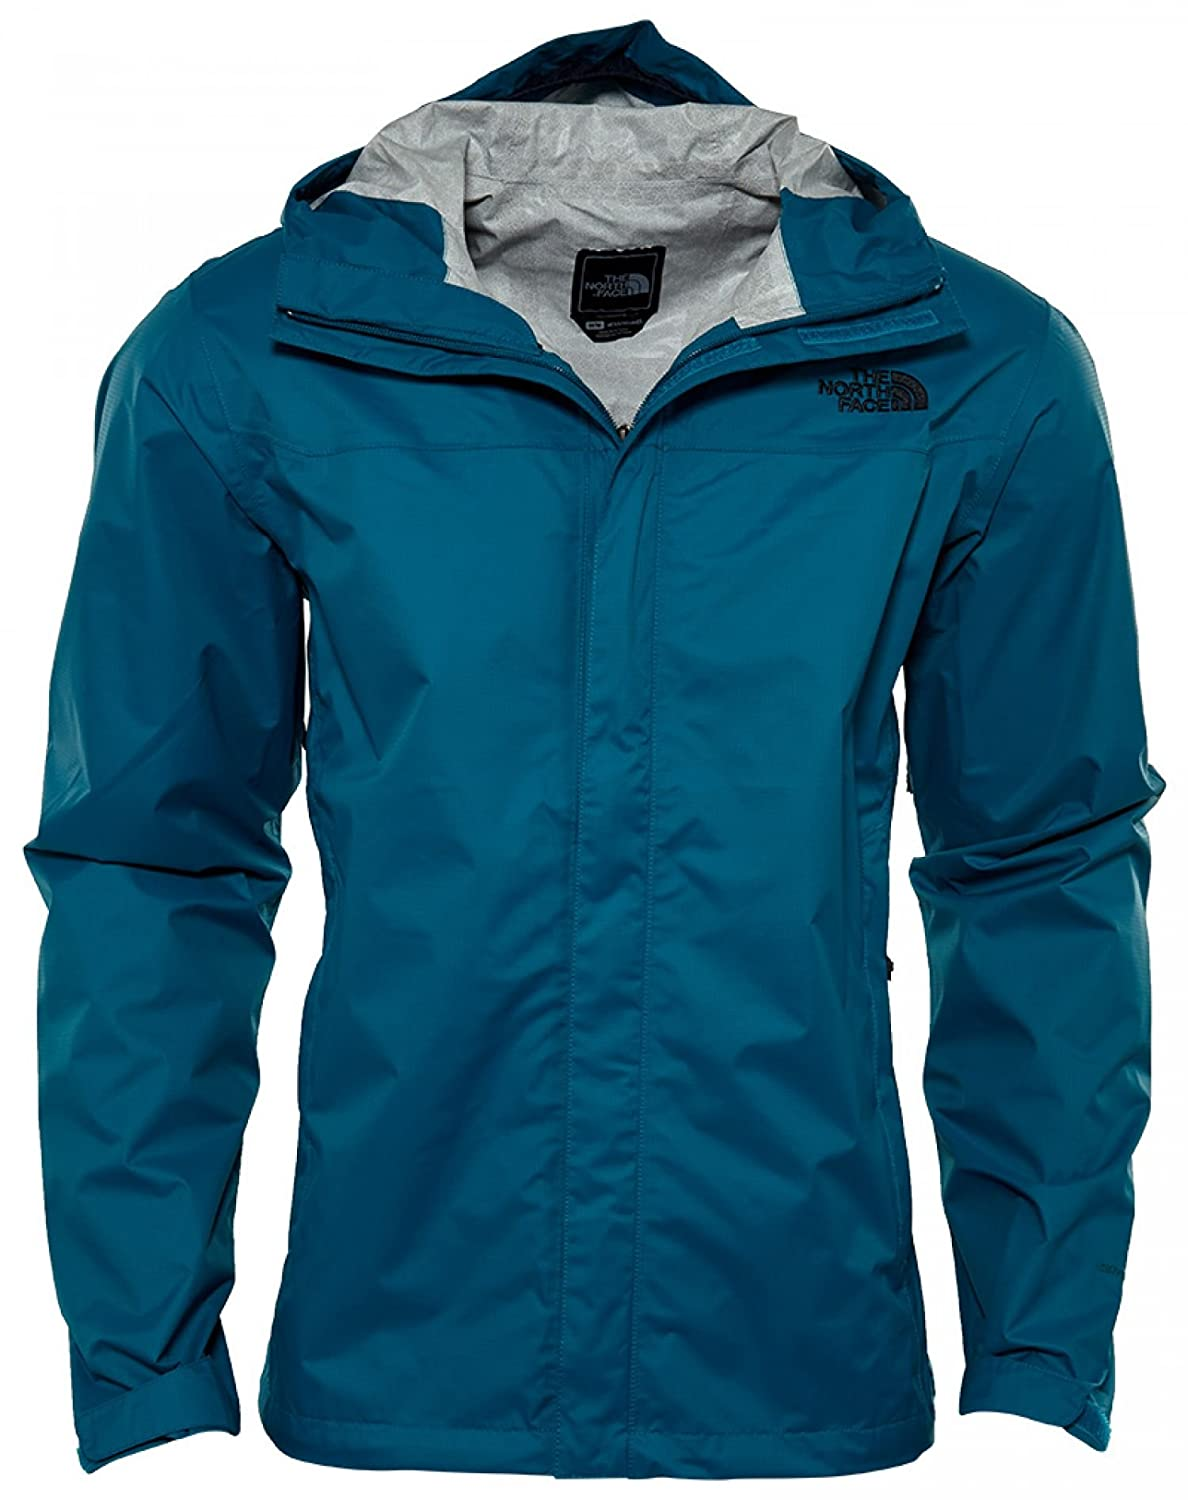 The North Face OUTERWEAR メンズ B01DTF2MJ4 L|Ocean Depths Blue Ocean Depths Blue L